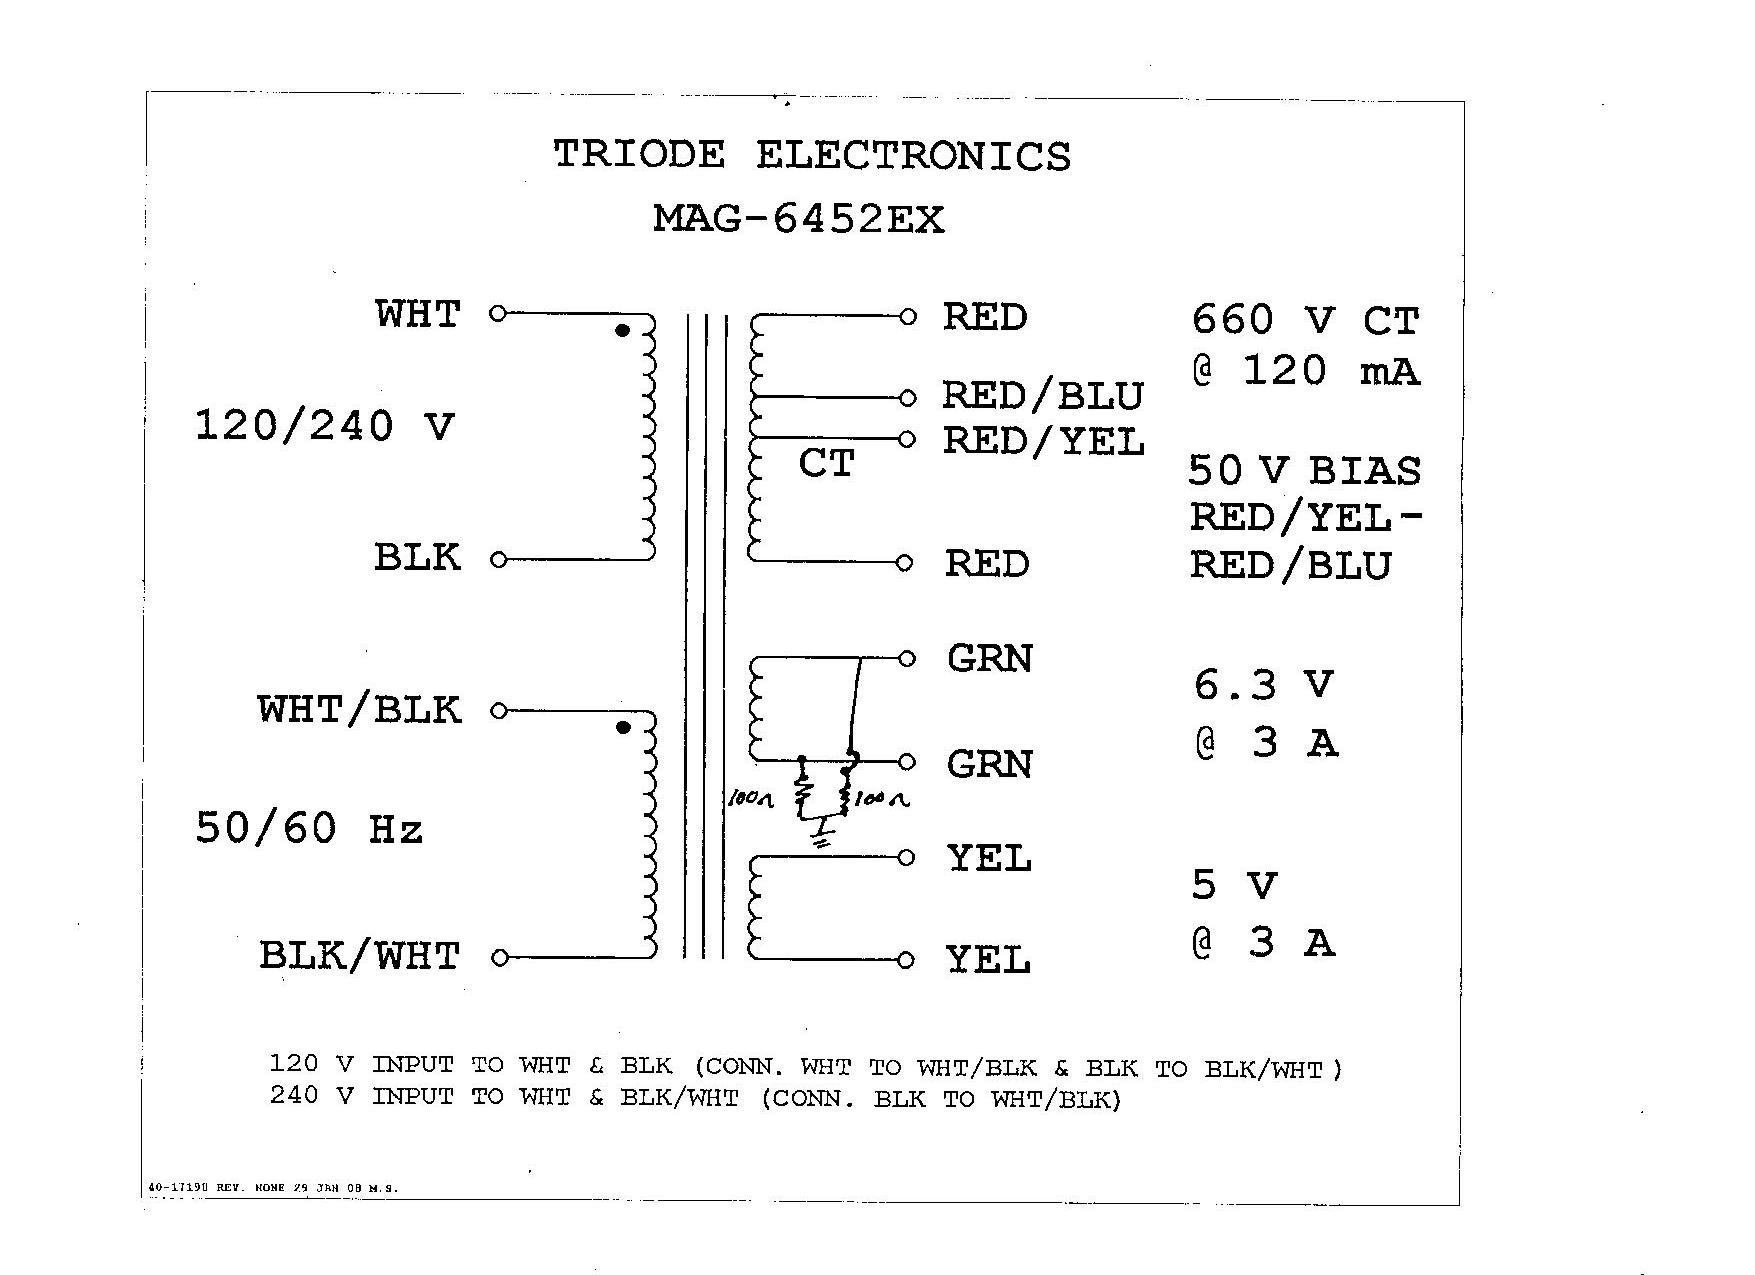 208v wiring diagram bb purebuild co \u2022120 240v transformer wiring diagram diagrams online wiring diagram rh 10 ni system de 208v motor wiring diagram 208v single phase wiring diagram